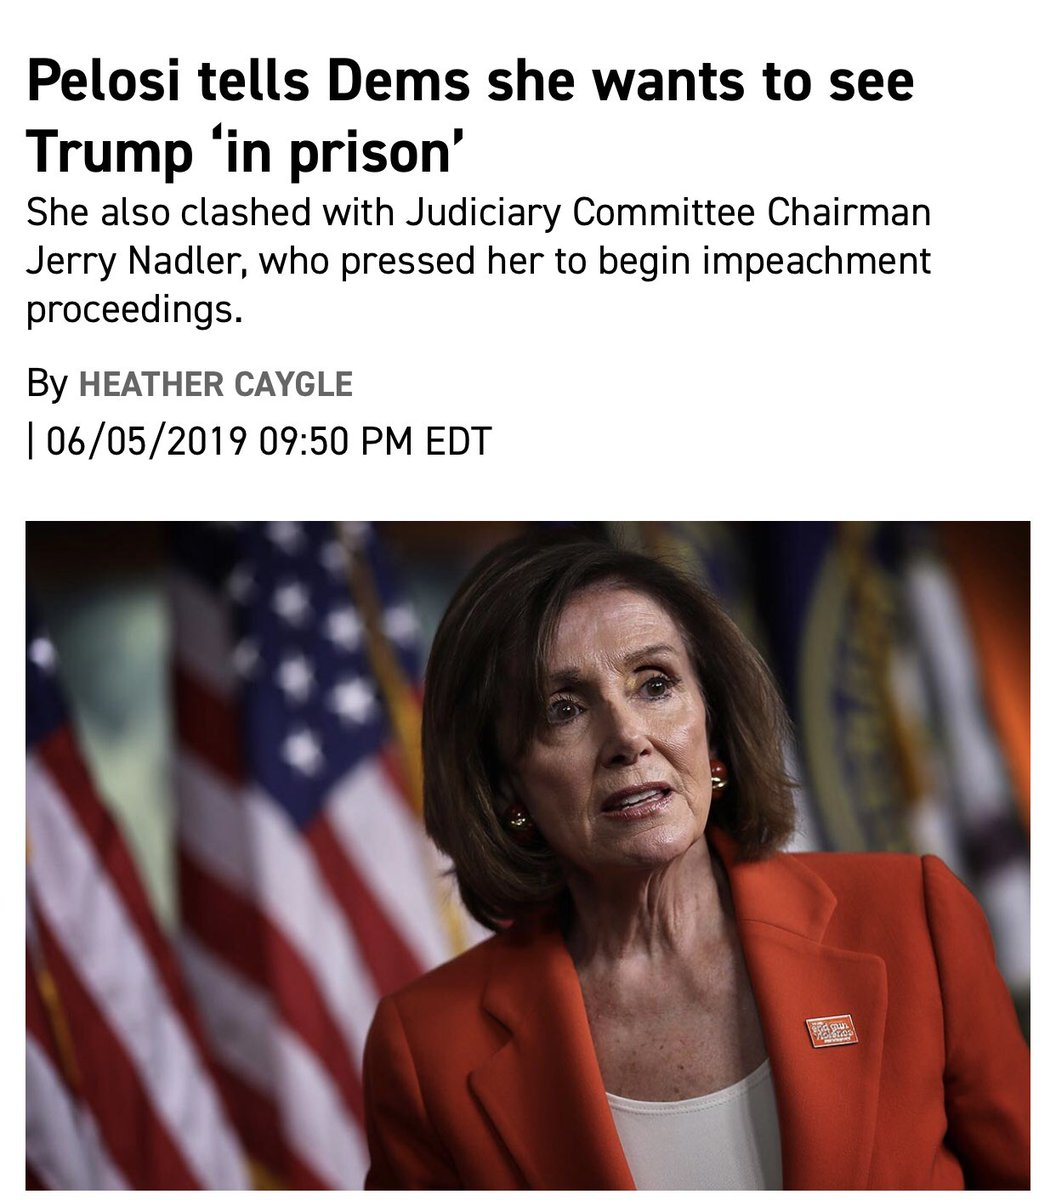 Dems want to see our President in prison, yet voted on Tuesday to give amnesty to gang members, drunk drivers, & firearm offenders.   The issues prioritized by the House Majority are intentionally divisive, meant only to signal that their new direction is sufficiently extreme.